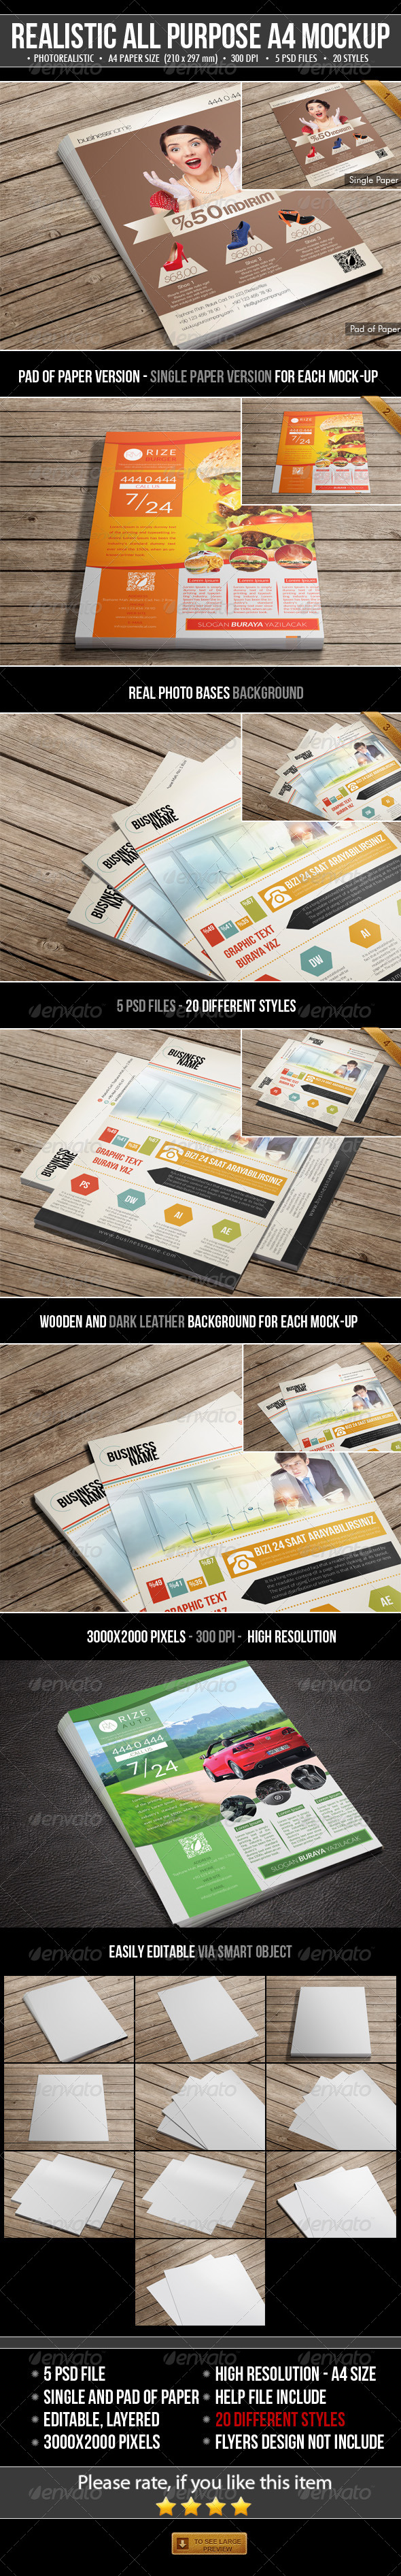 GraphicRiver Realistic All Purpose A4 Mock-Up 5067052